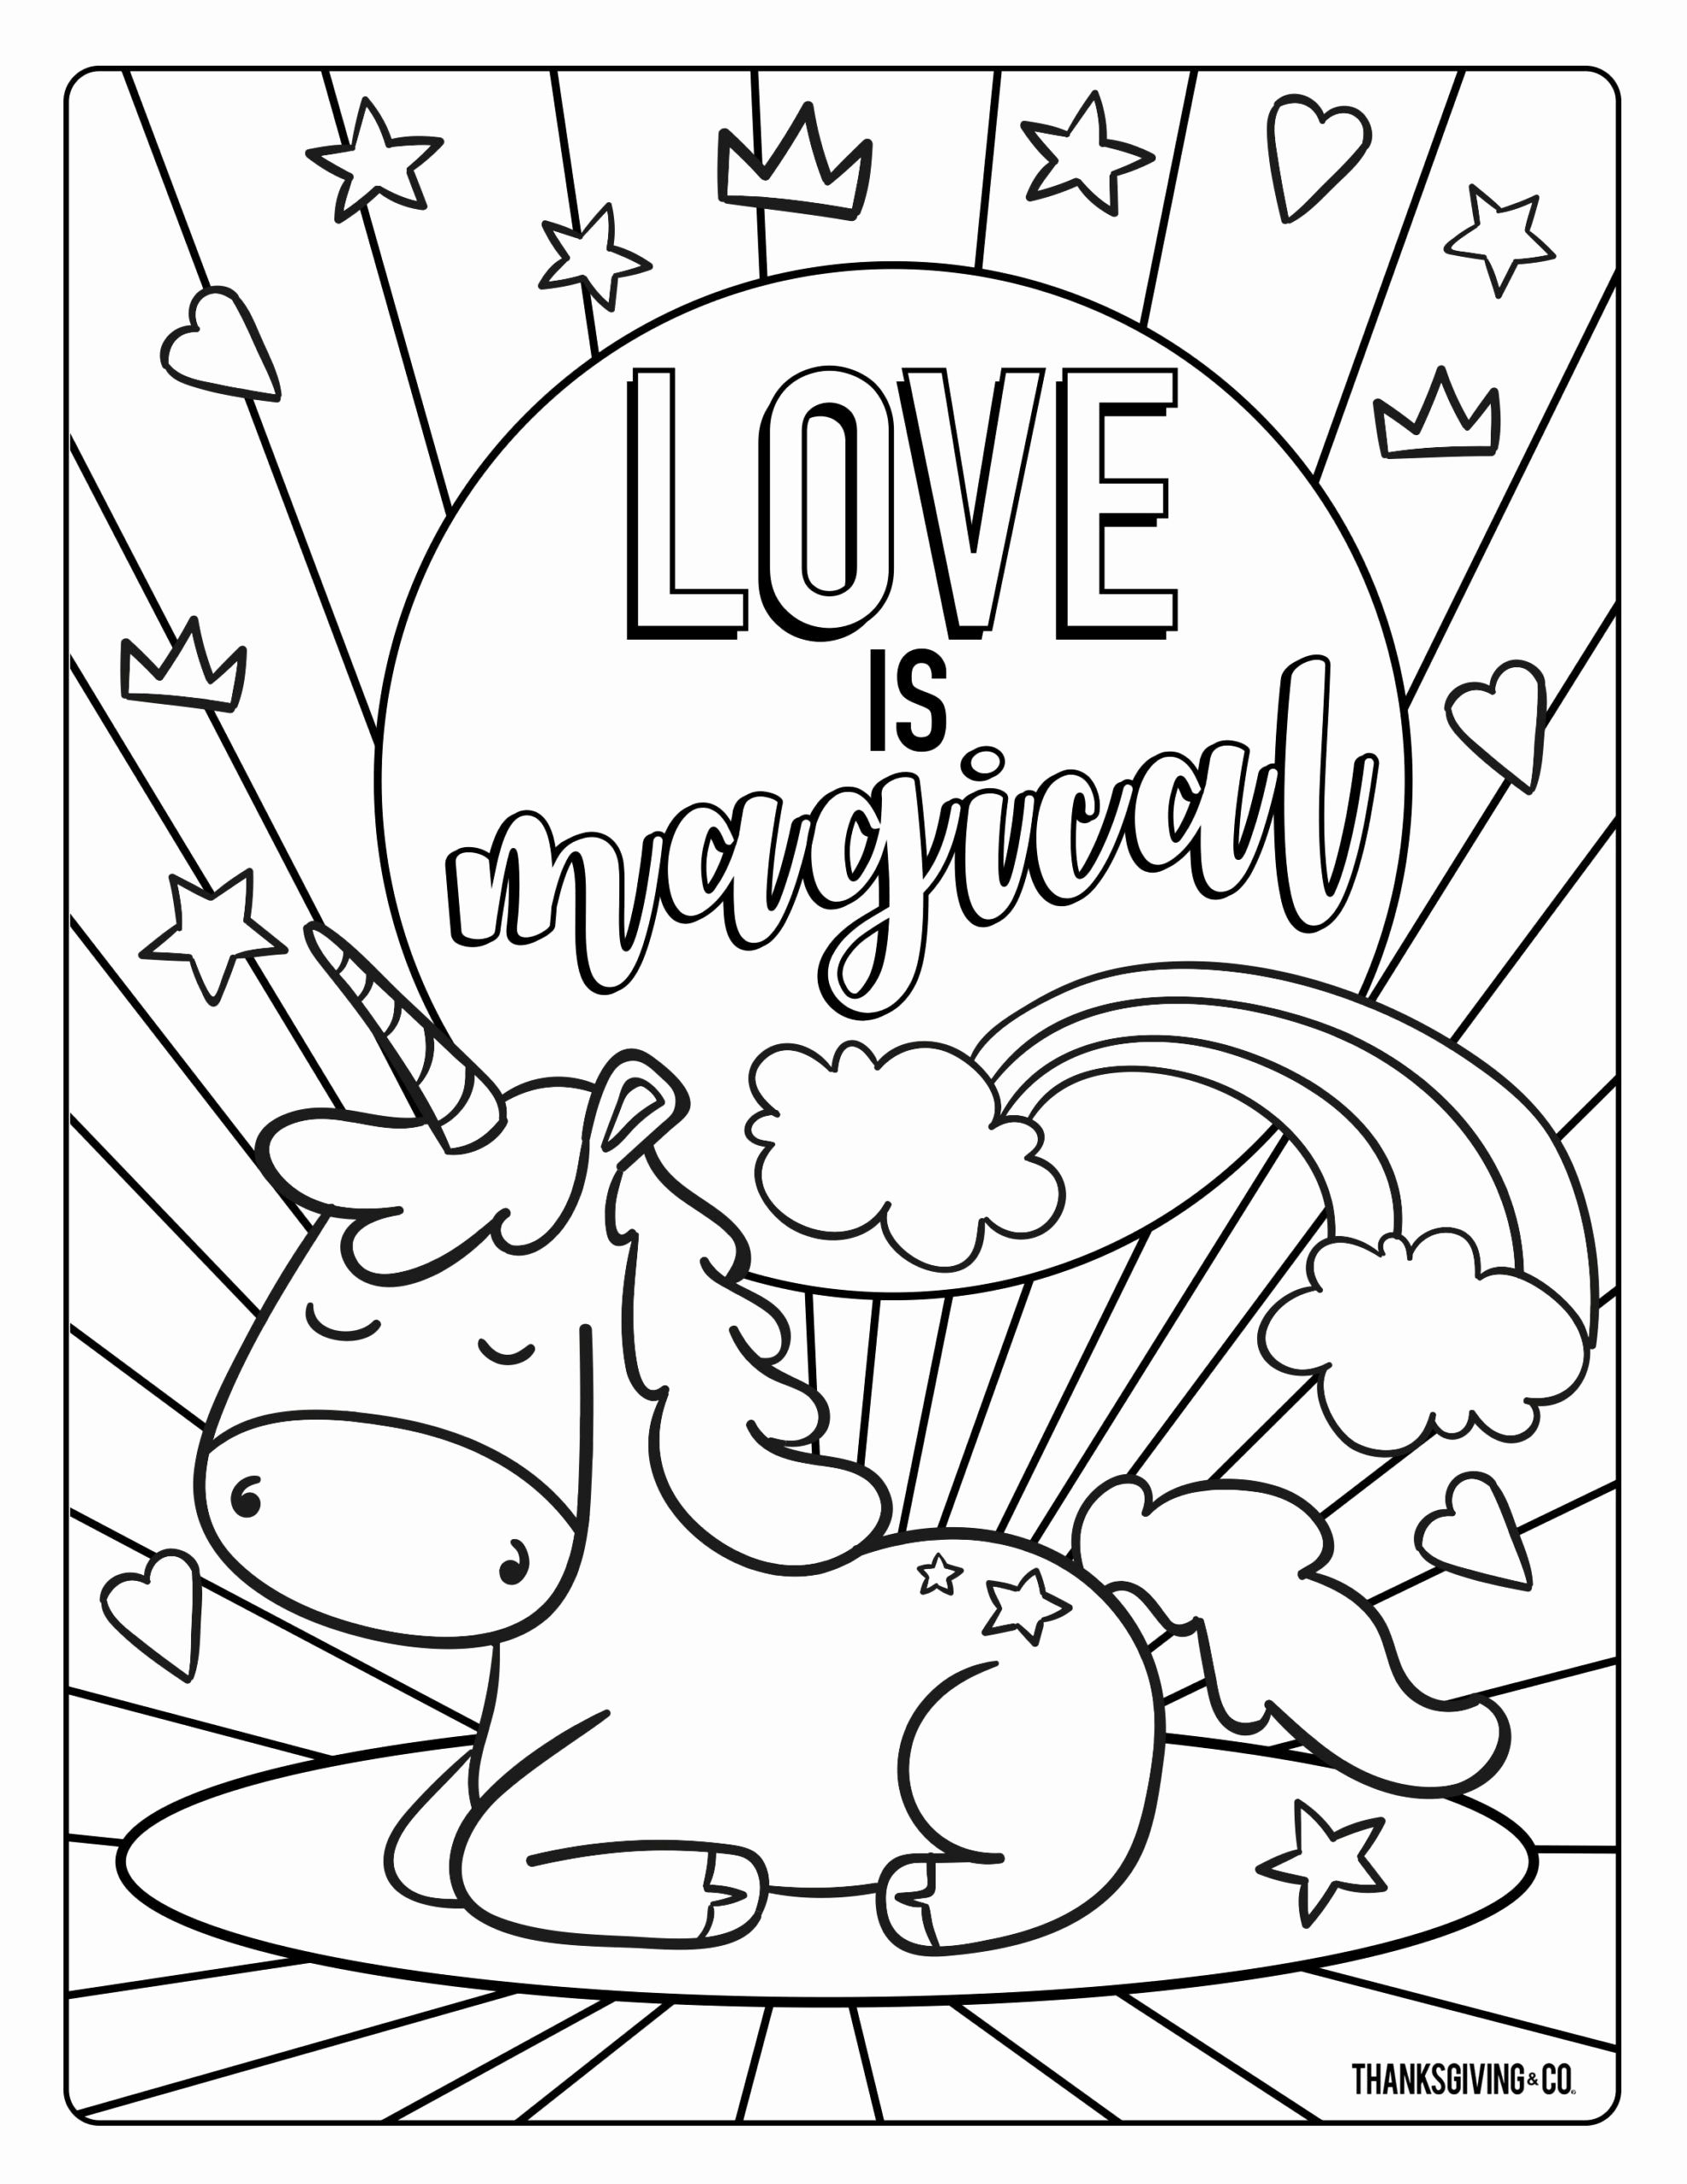 Printable Valentine Coloring Pages For Preschool Best Of Unicorn Valent Valentines Day Coloring Page Printable Valentines Coloring Pages Crayola Coloring Pages